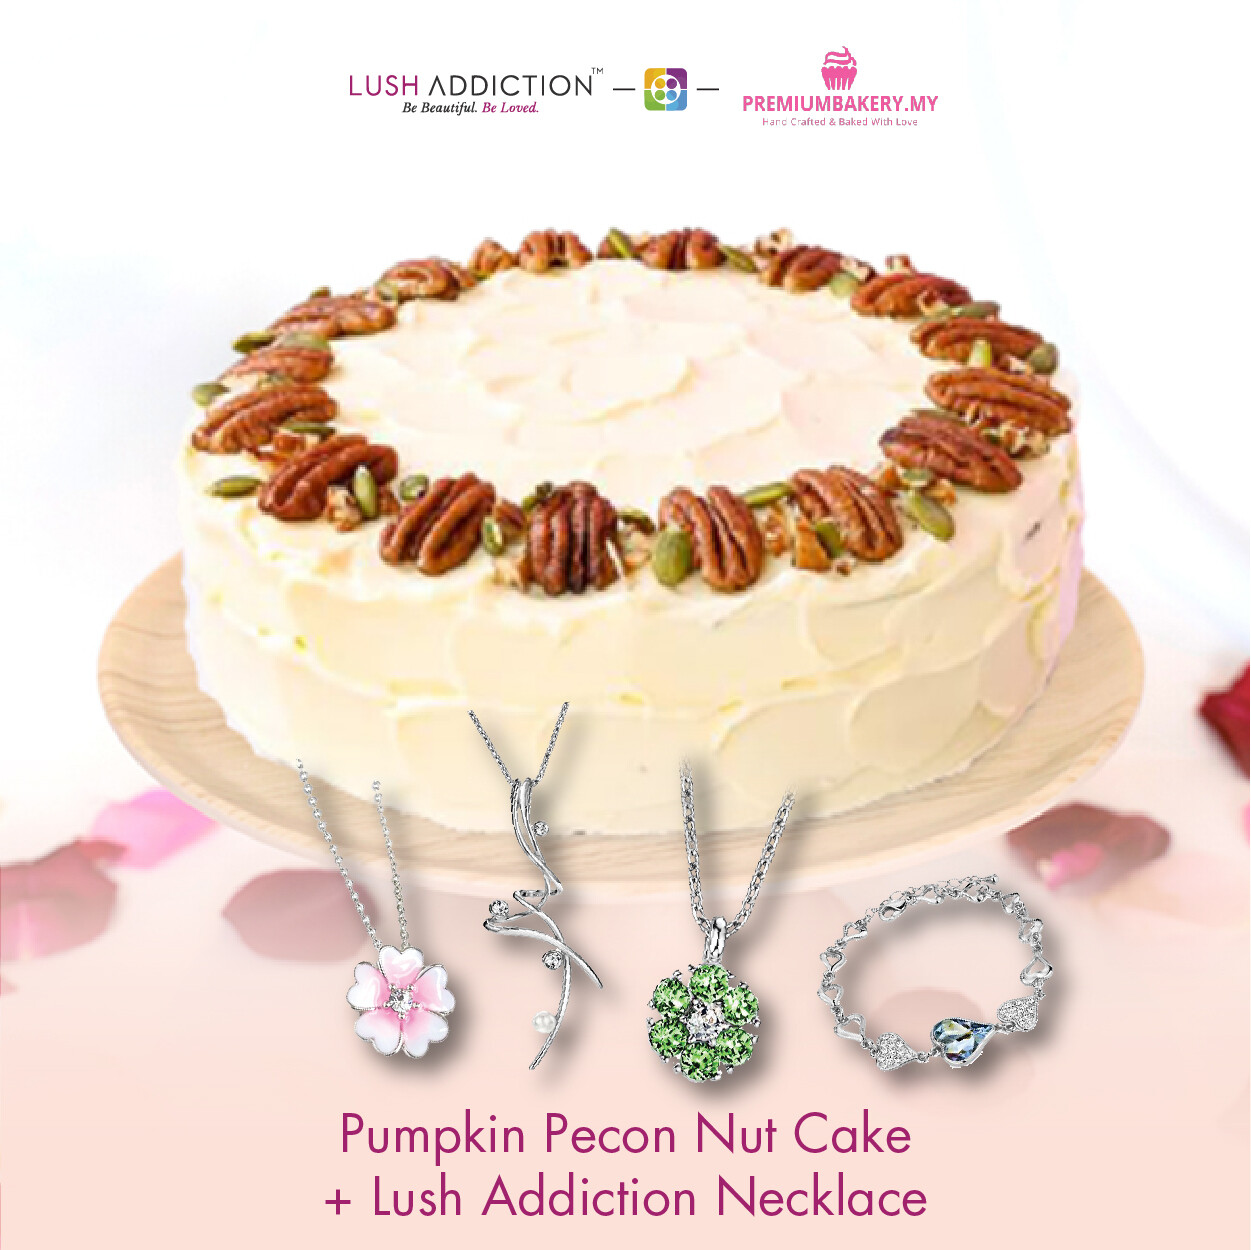 Pumpkin Pecon Nut Cake + Lush Addiction Necklace (By: Premium Bakery  from KL)